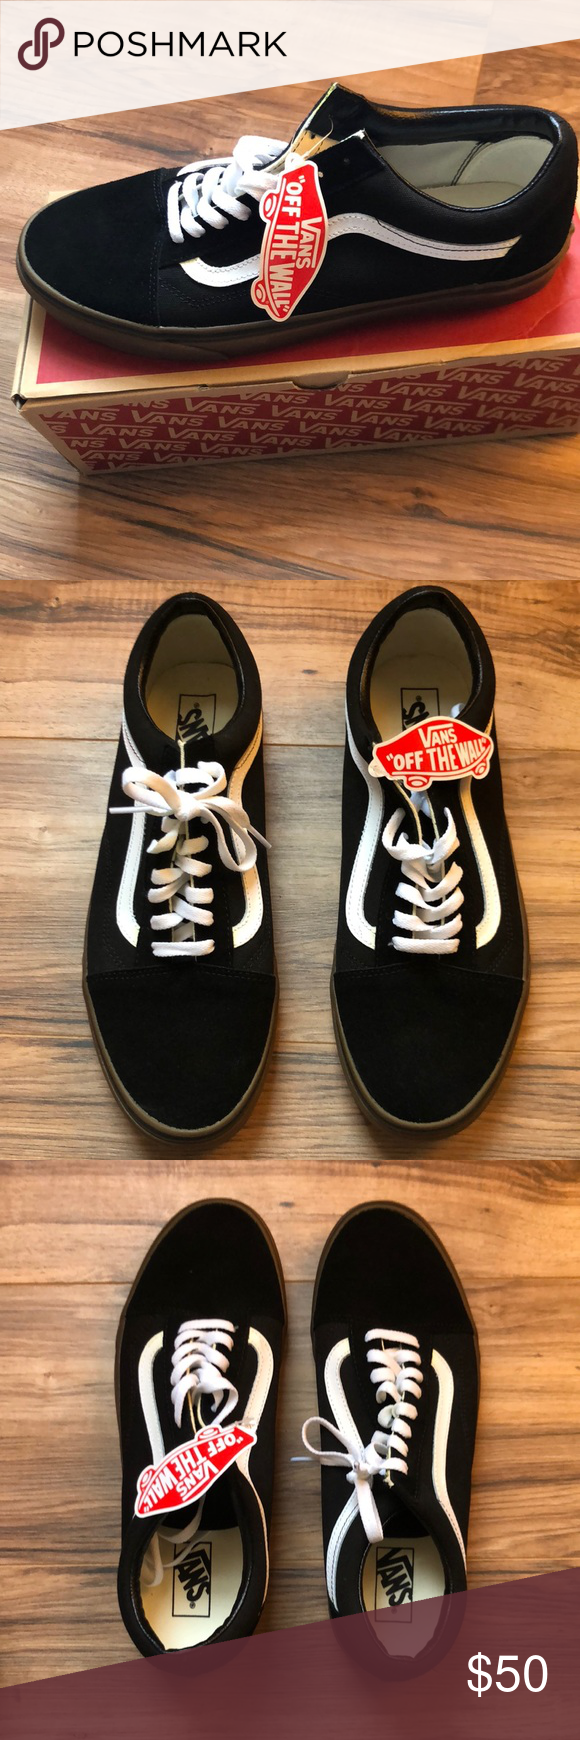 e266f72274 Vans Old Skool Leather Canvas Suede black gum NWT NO TRADES Create a bundle  and I ll offer a private discount! Vans Shoes